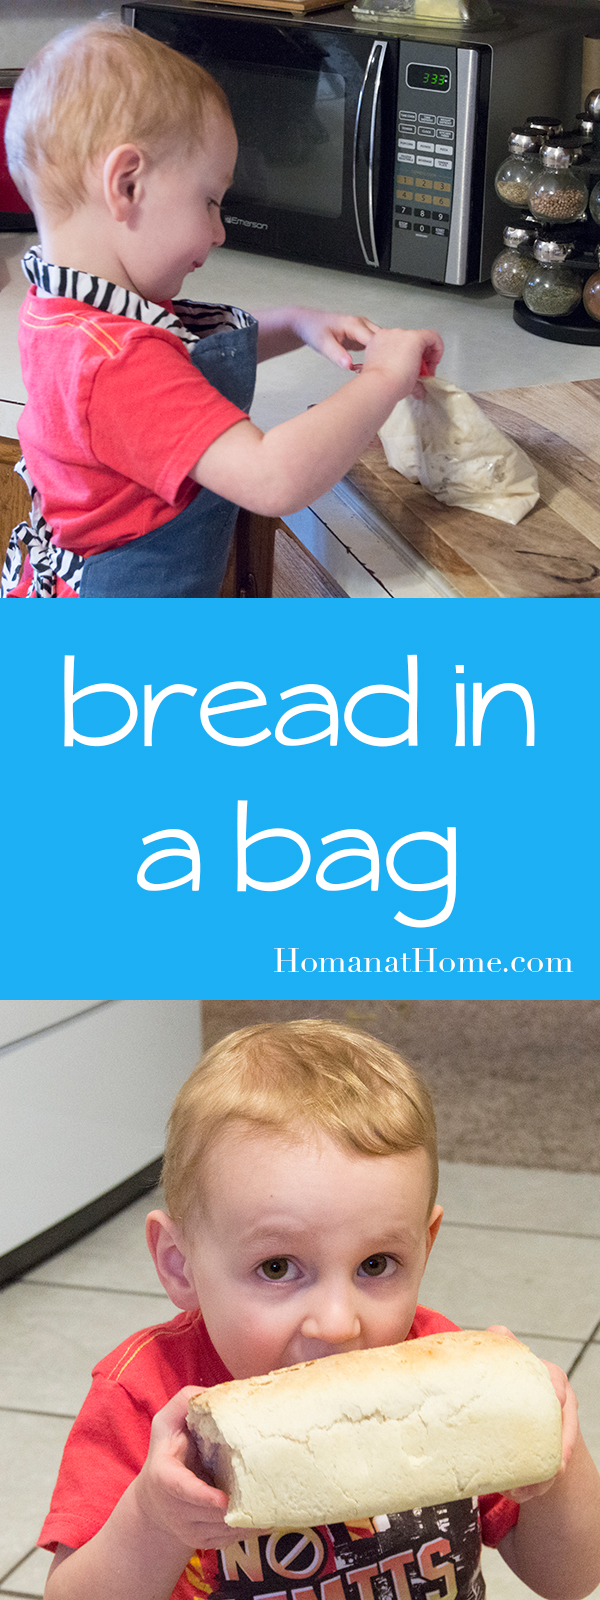 Bread in a Bag   Homan at Home